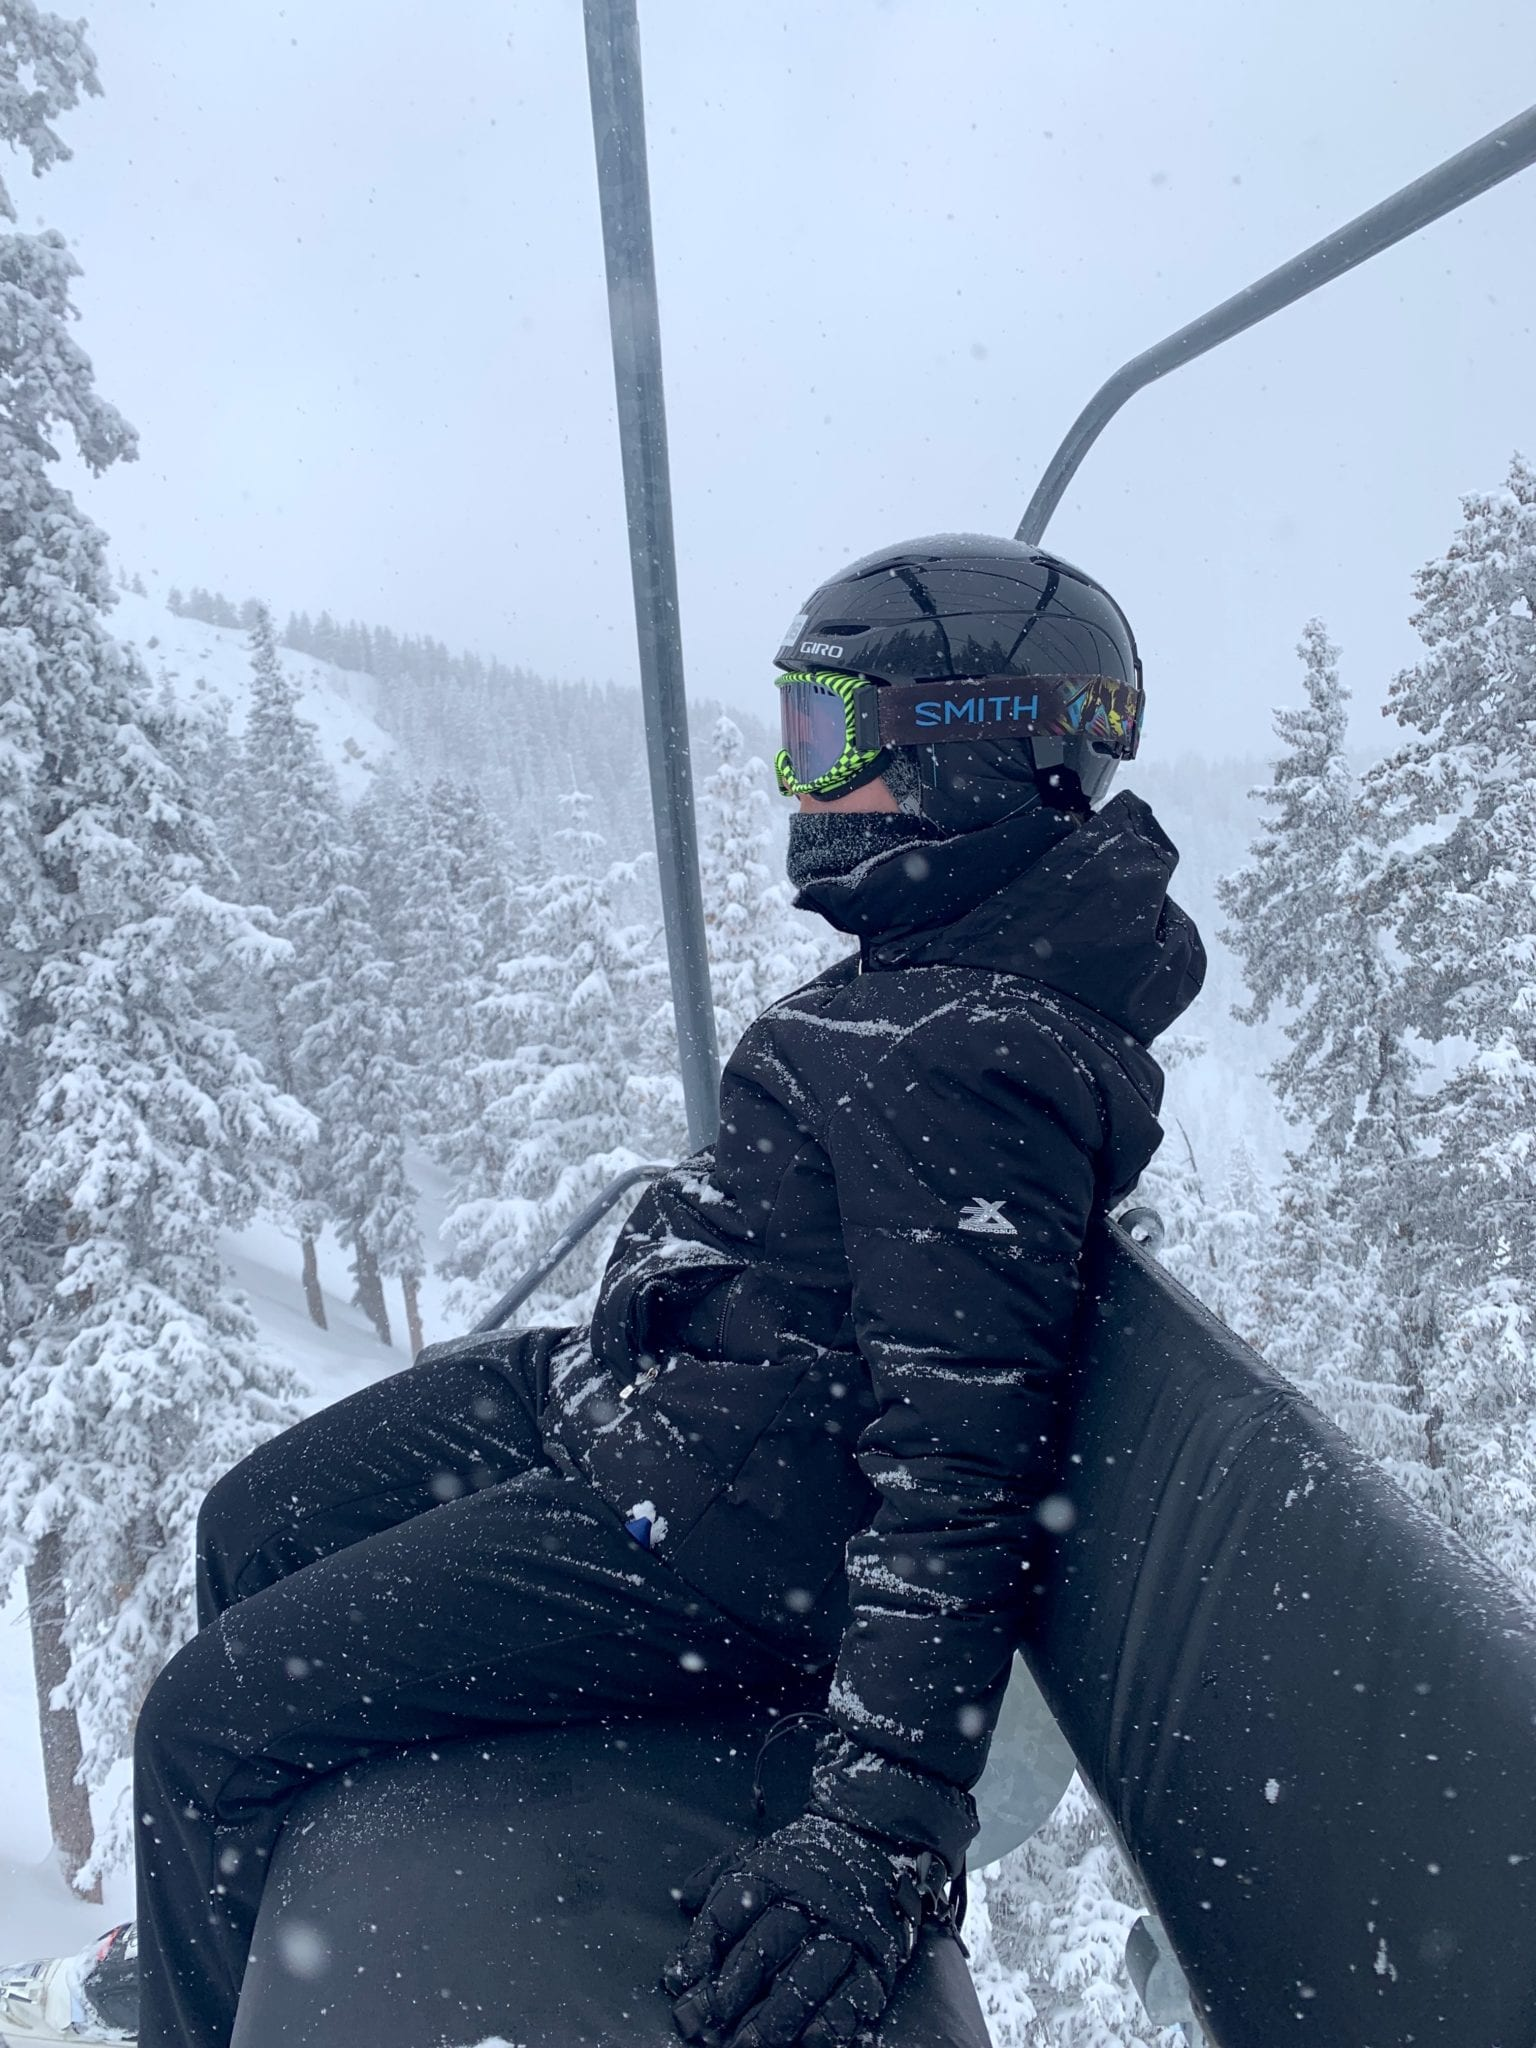 Riding the lifts